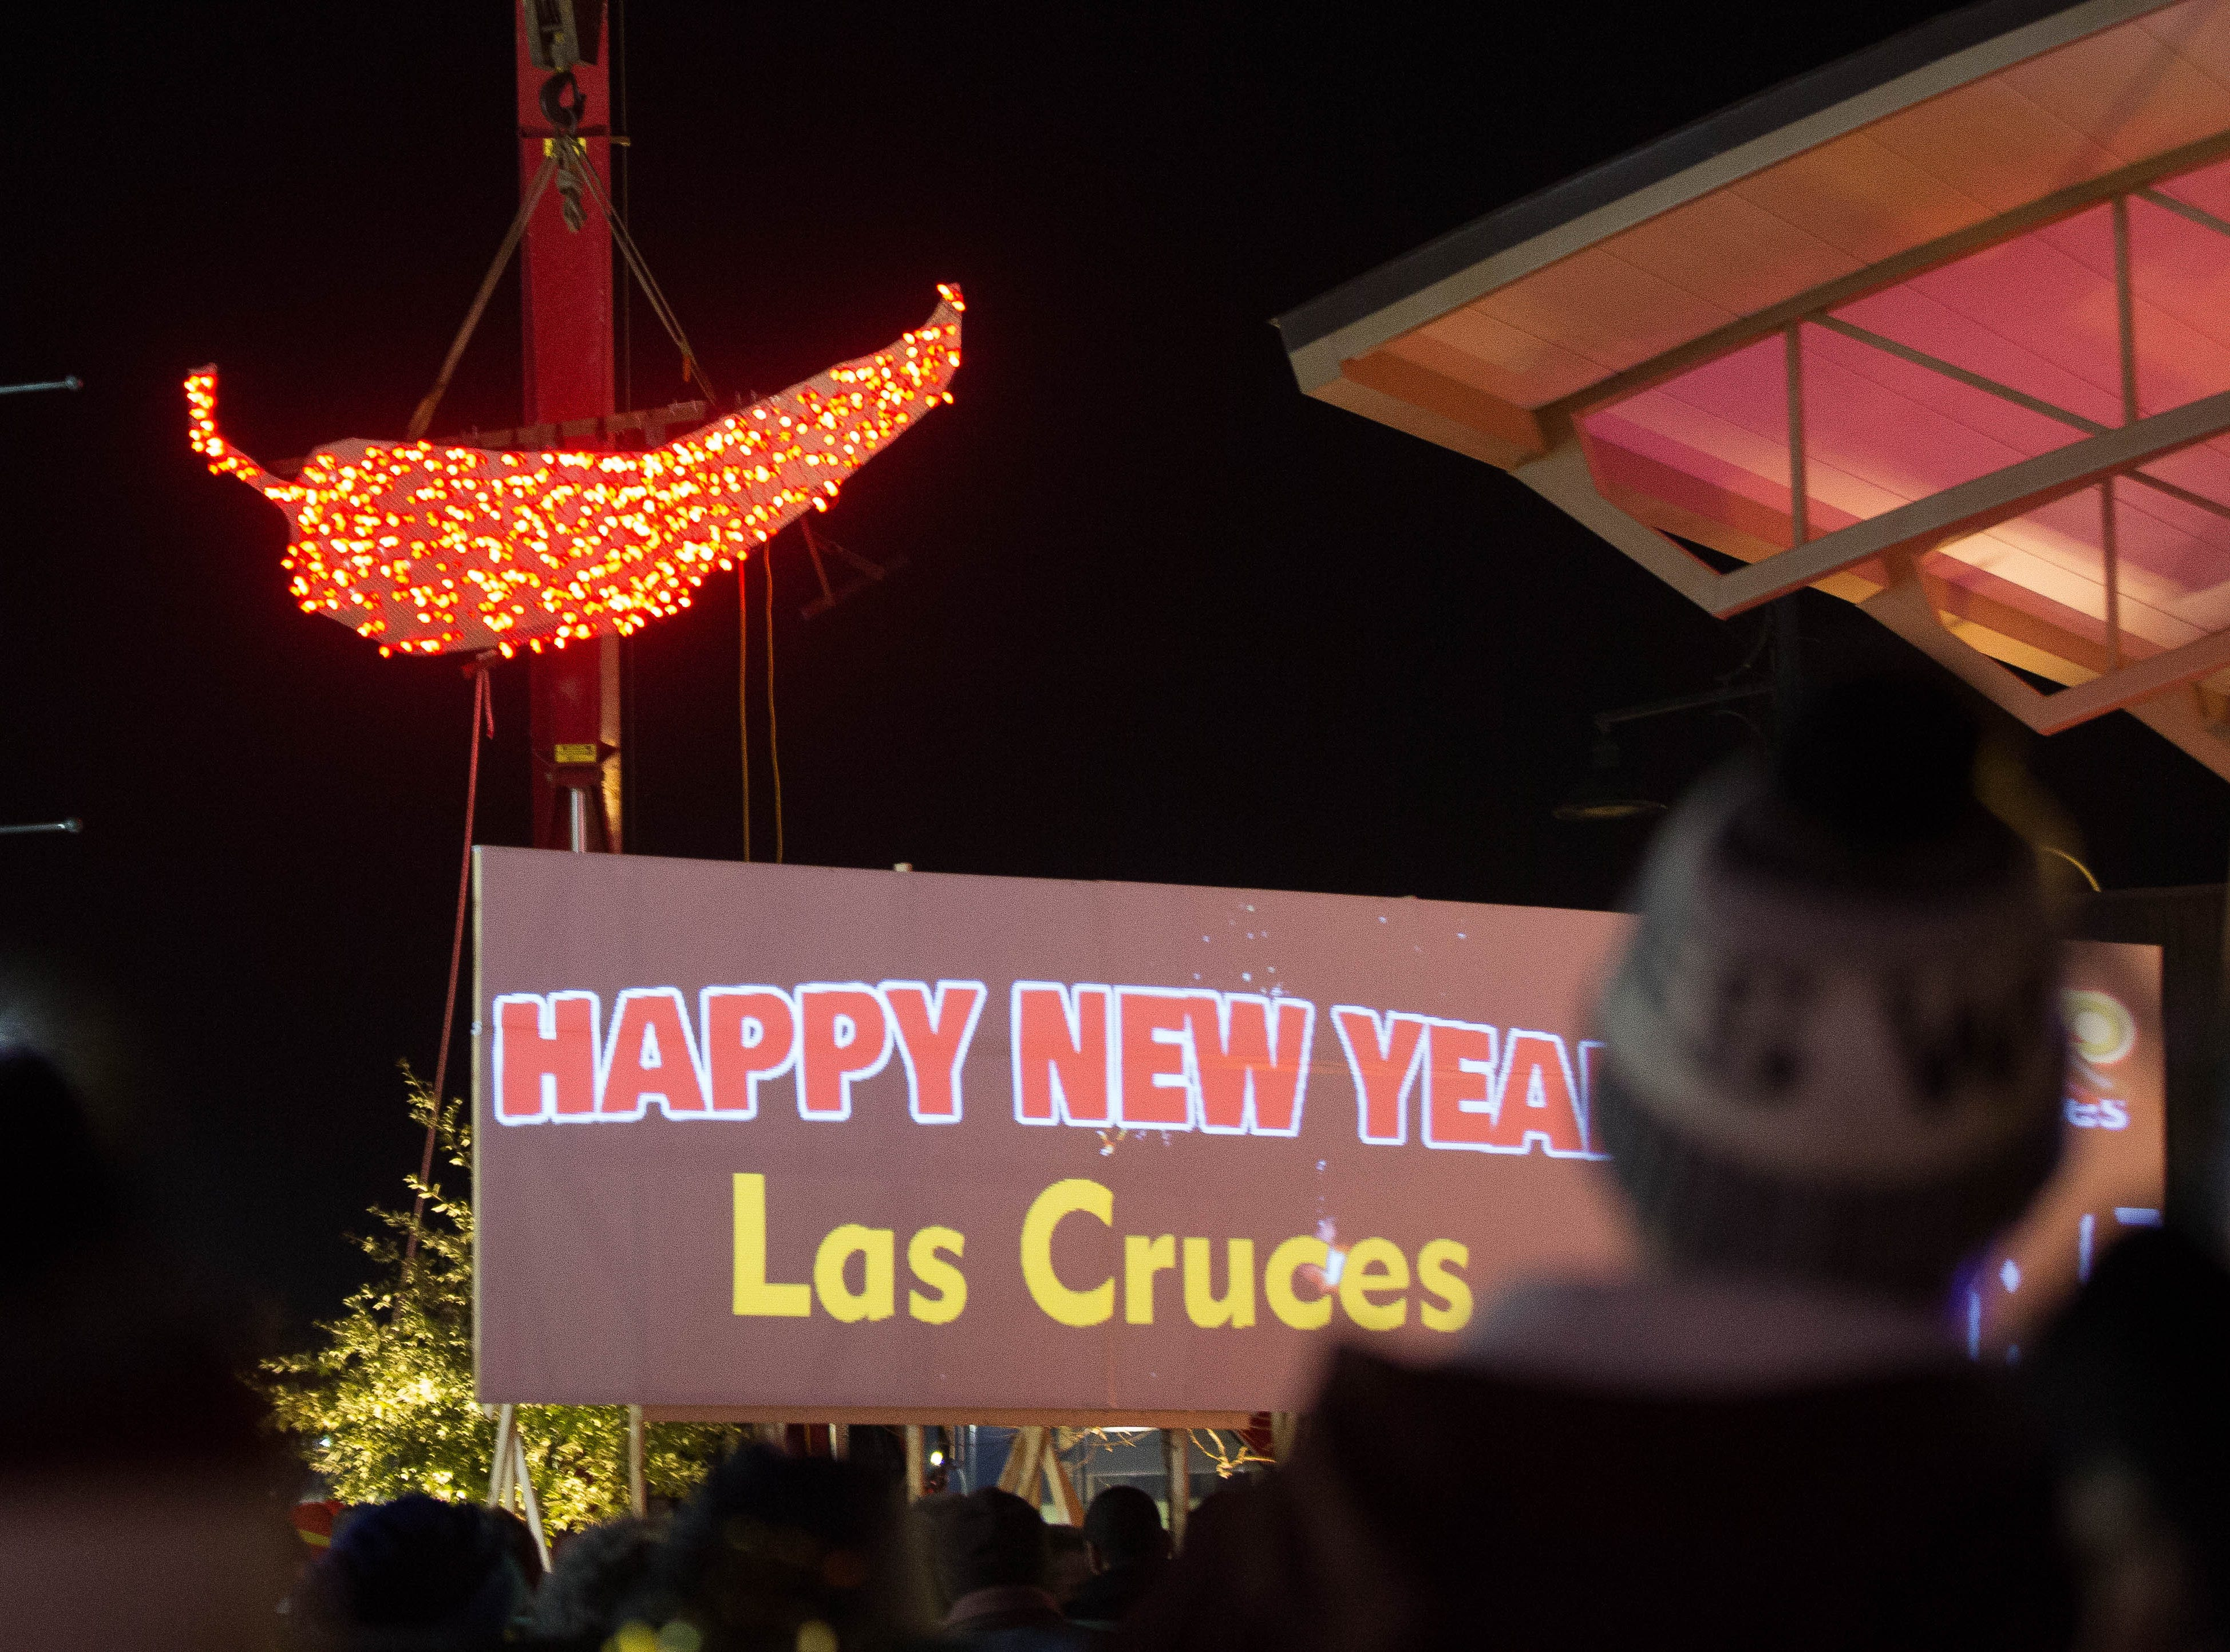 The crowd gathered at the Plaza de Las Cruces cheers as the Chile drops and turns red Tuesday January 1, 2019 at the turn of the New Year.